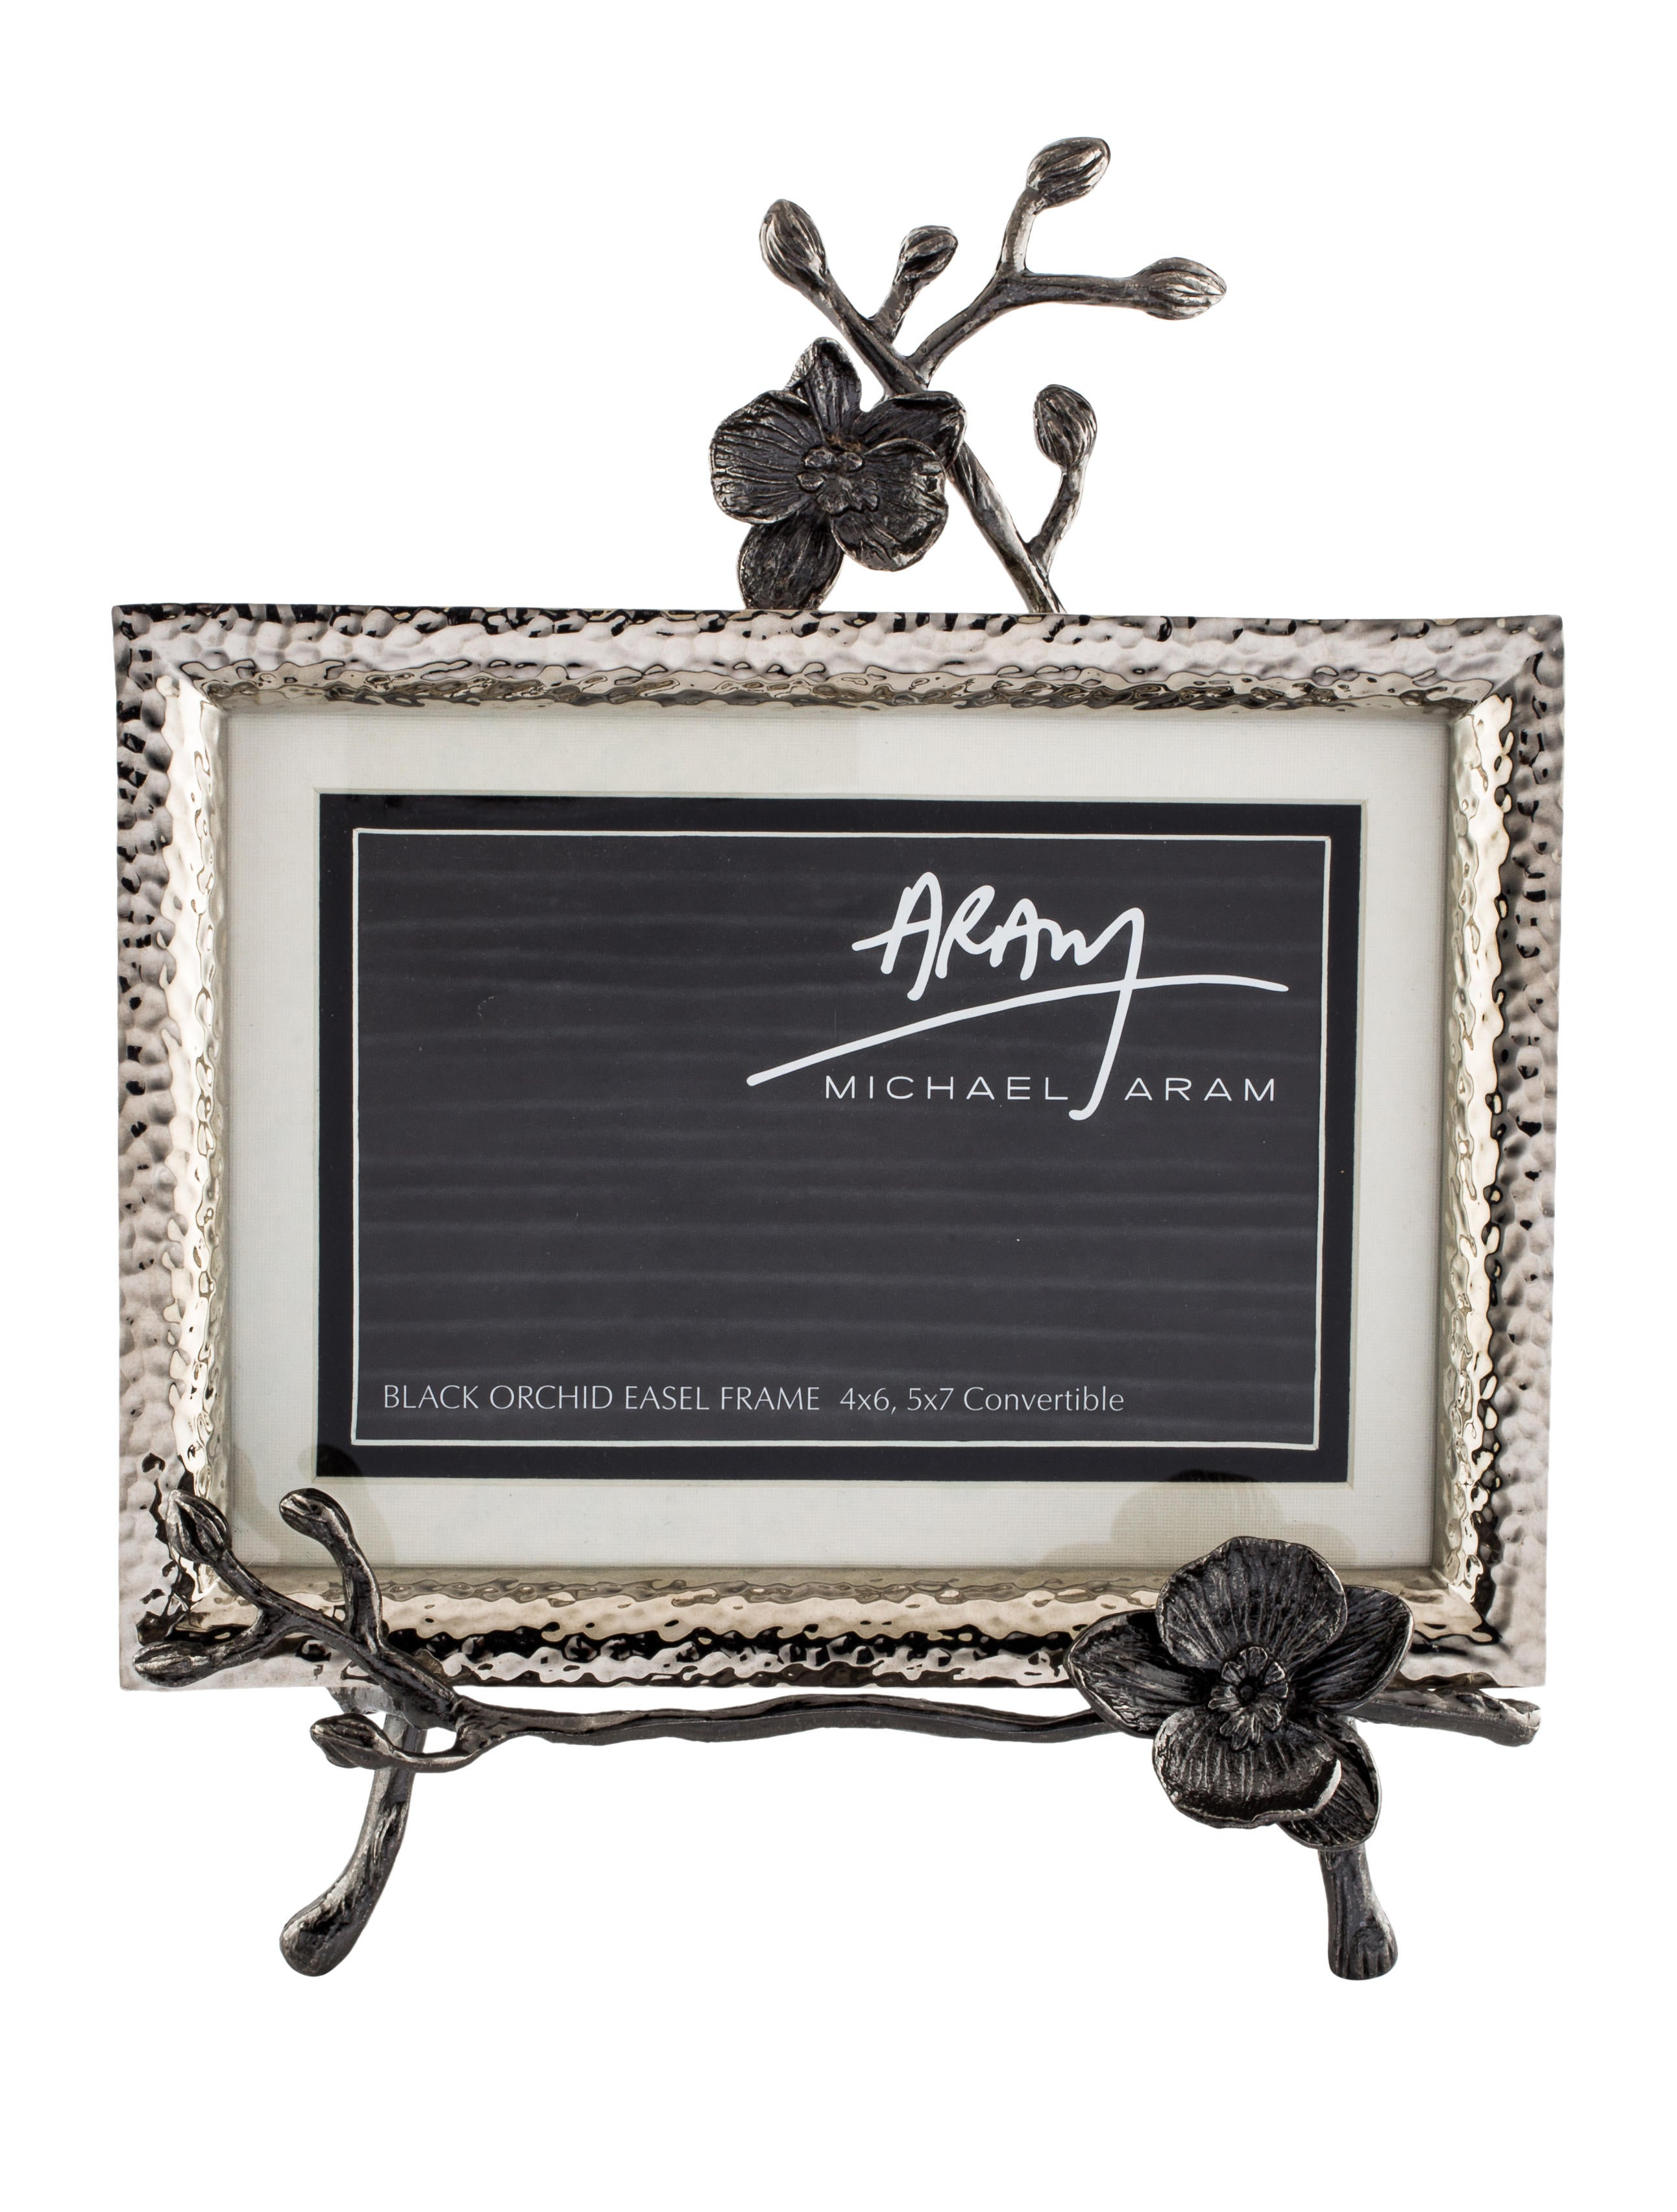 Michael Aram Black Orchid Easel Amp Picture Frame Decor